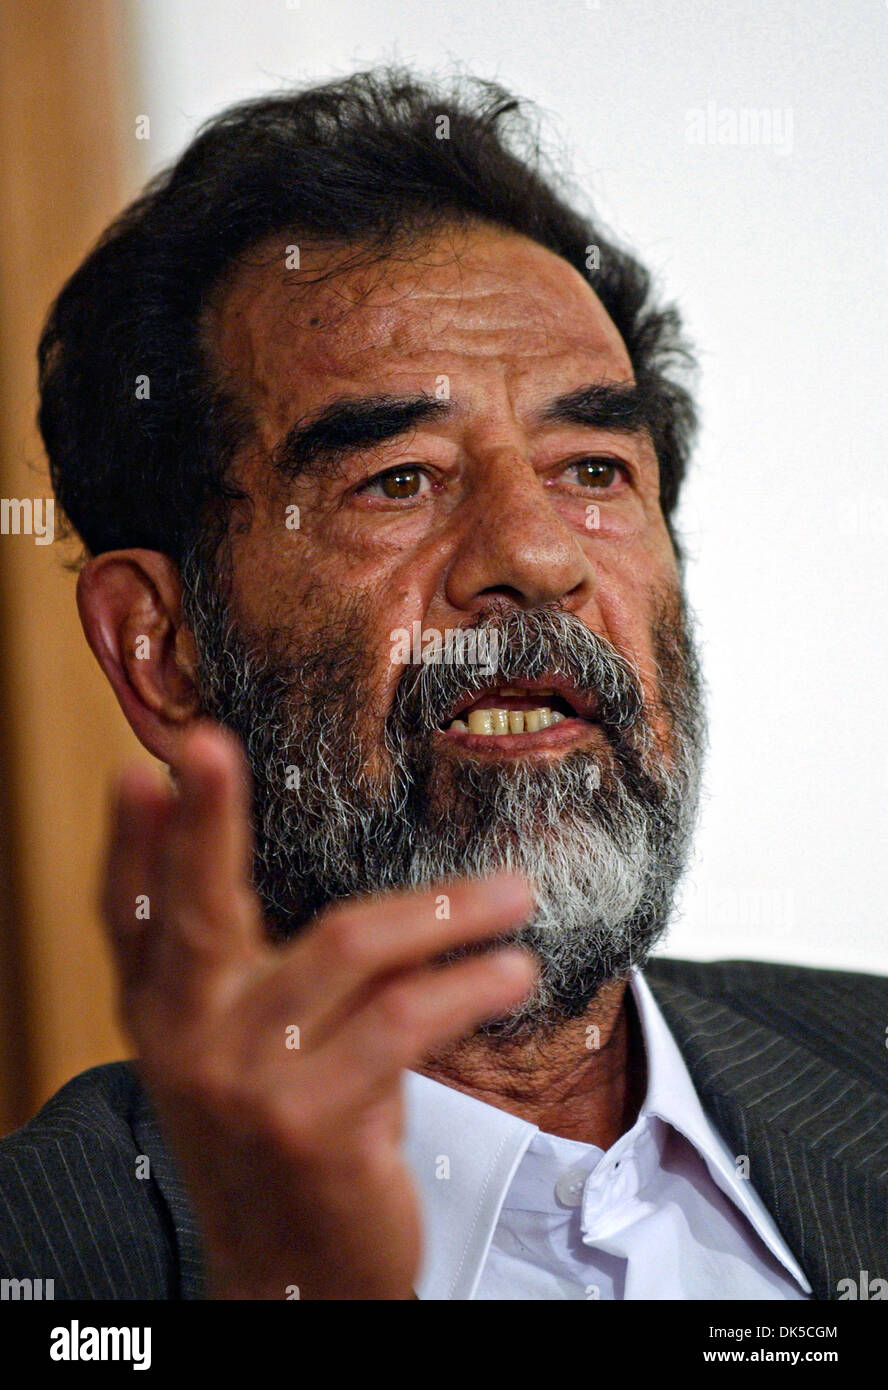 Former President of Iraq, Saddam Hussein gestures during his initial interview by a special tribunal after being captured July 2004 in Baghdad, Iraq. - Stock Image